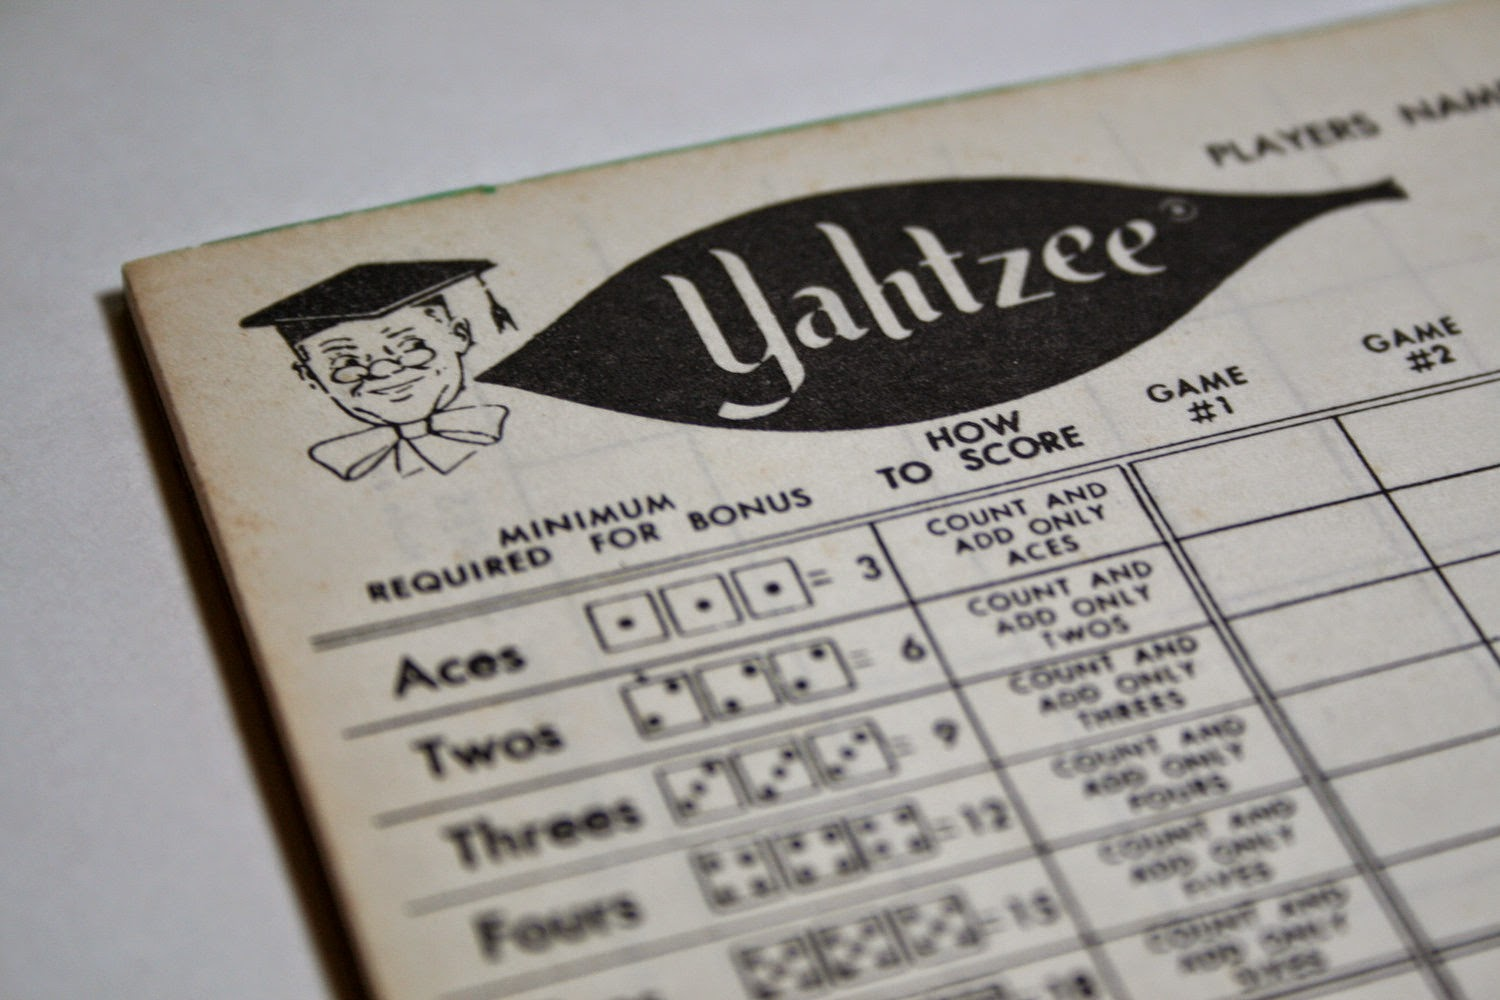 graphic about Yahtzee Printable Score Sheets known as Yahtzee On the net: Printable Yahtzee Rating Sheet